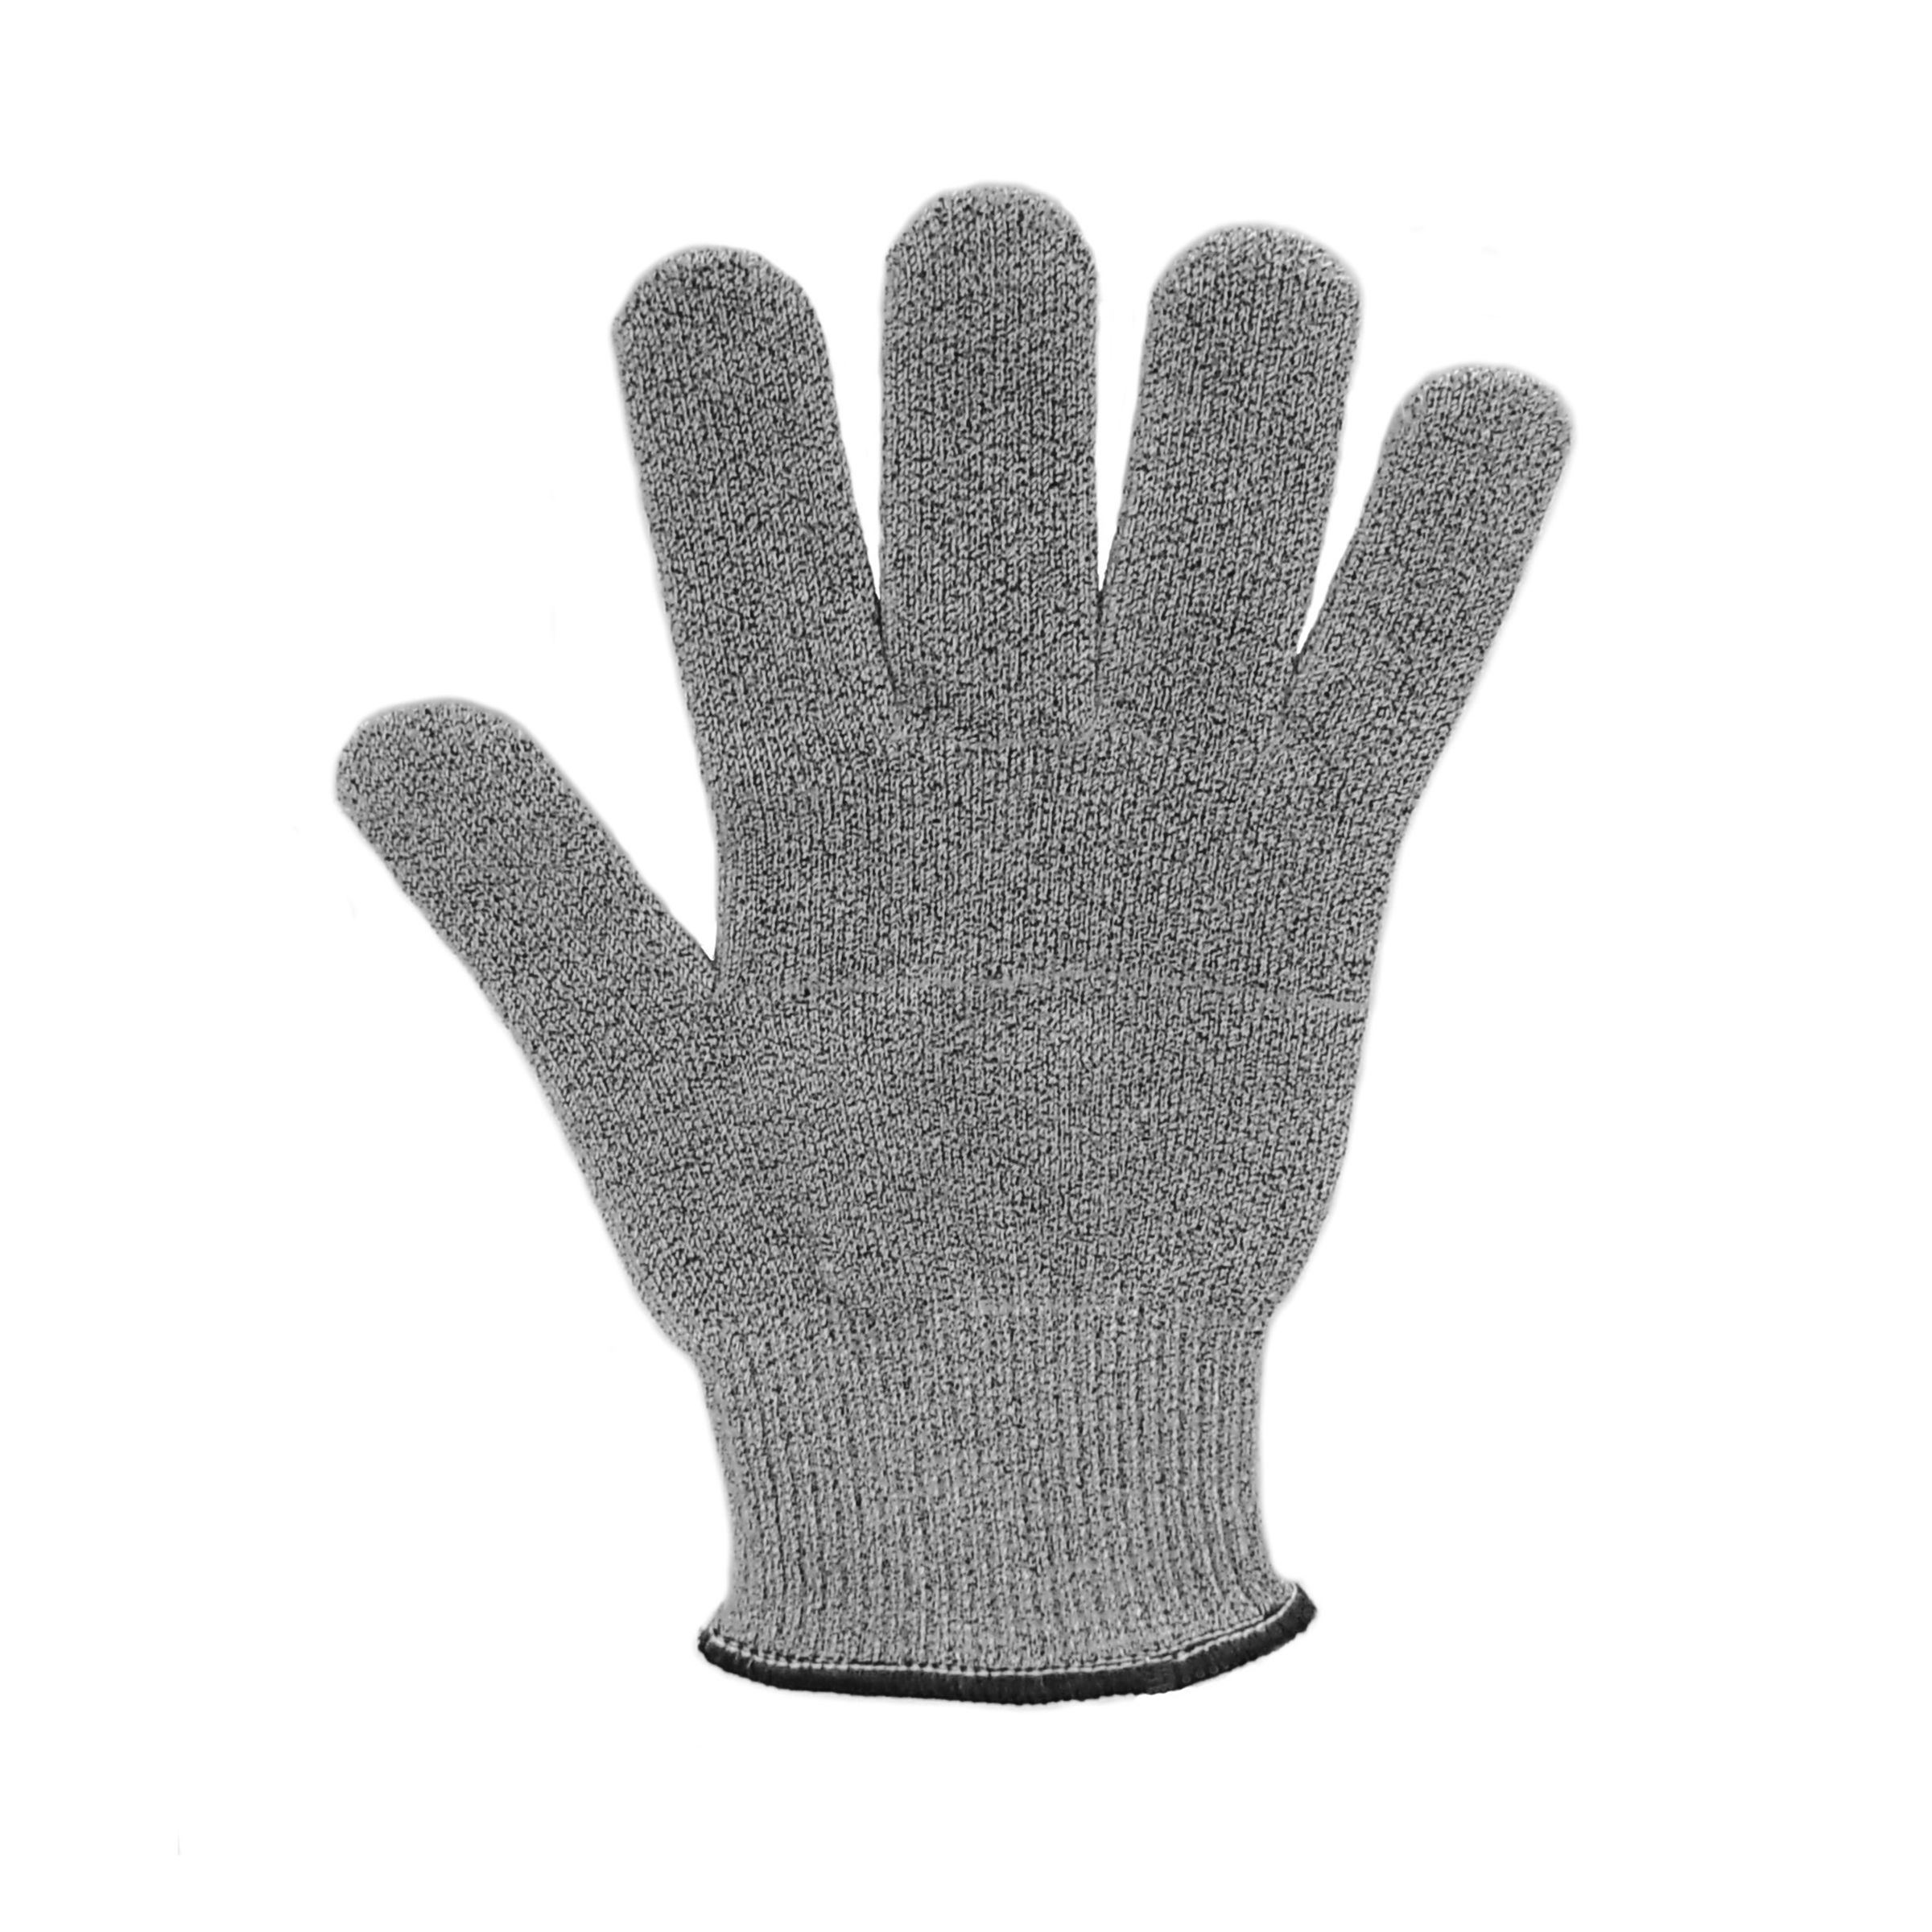 Image of Microplane Cut resistant glove